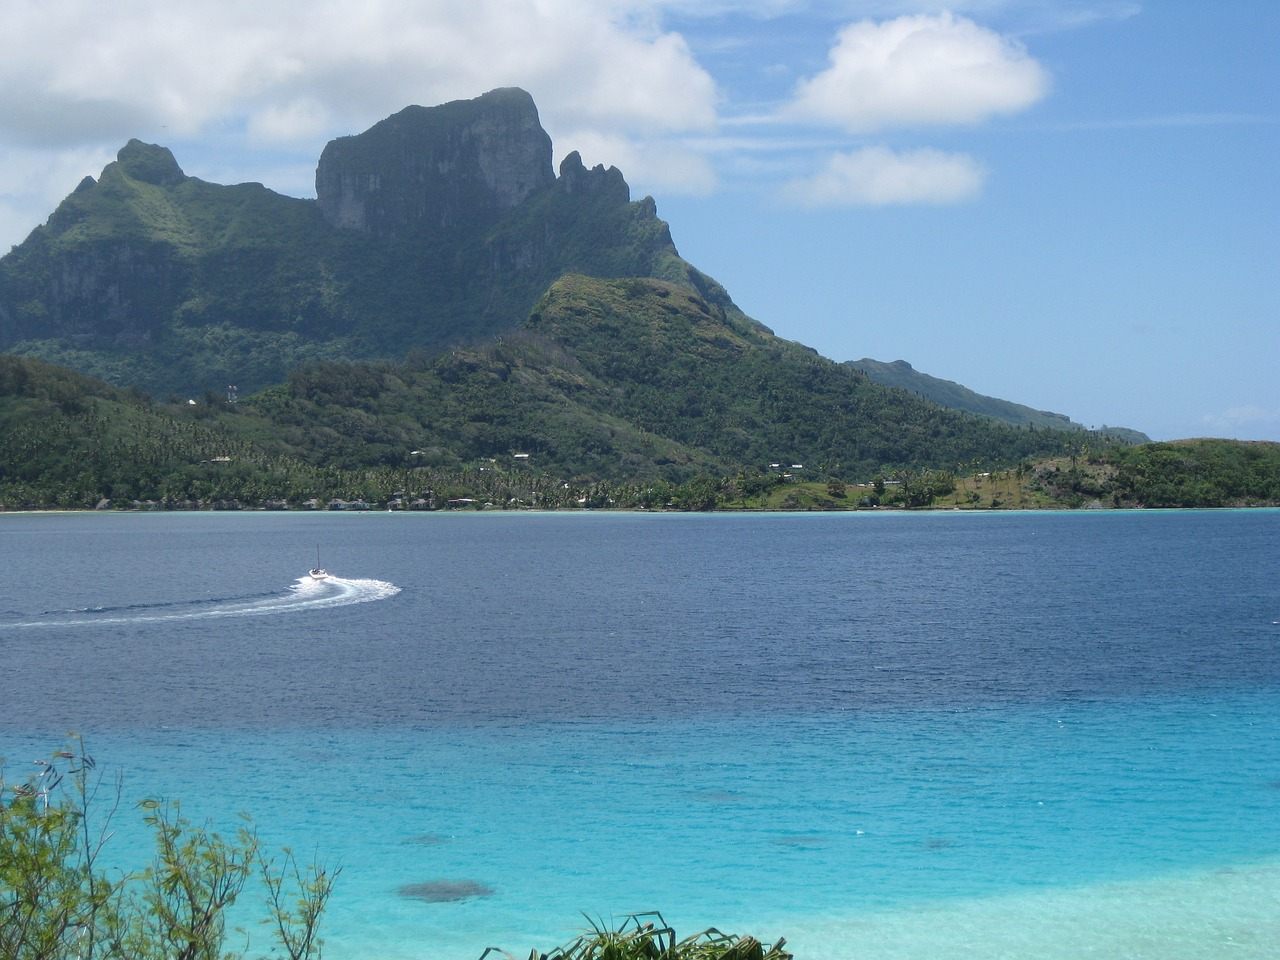 Visiting Tahiti and Bora Bora - Most Amazing Islands of the Pacific Ocean